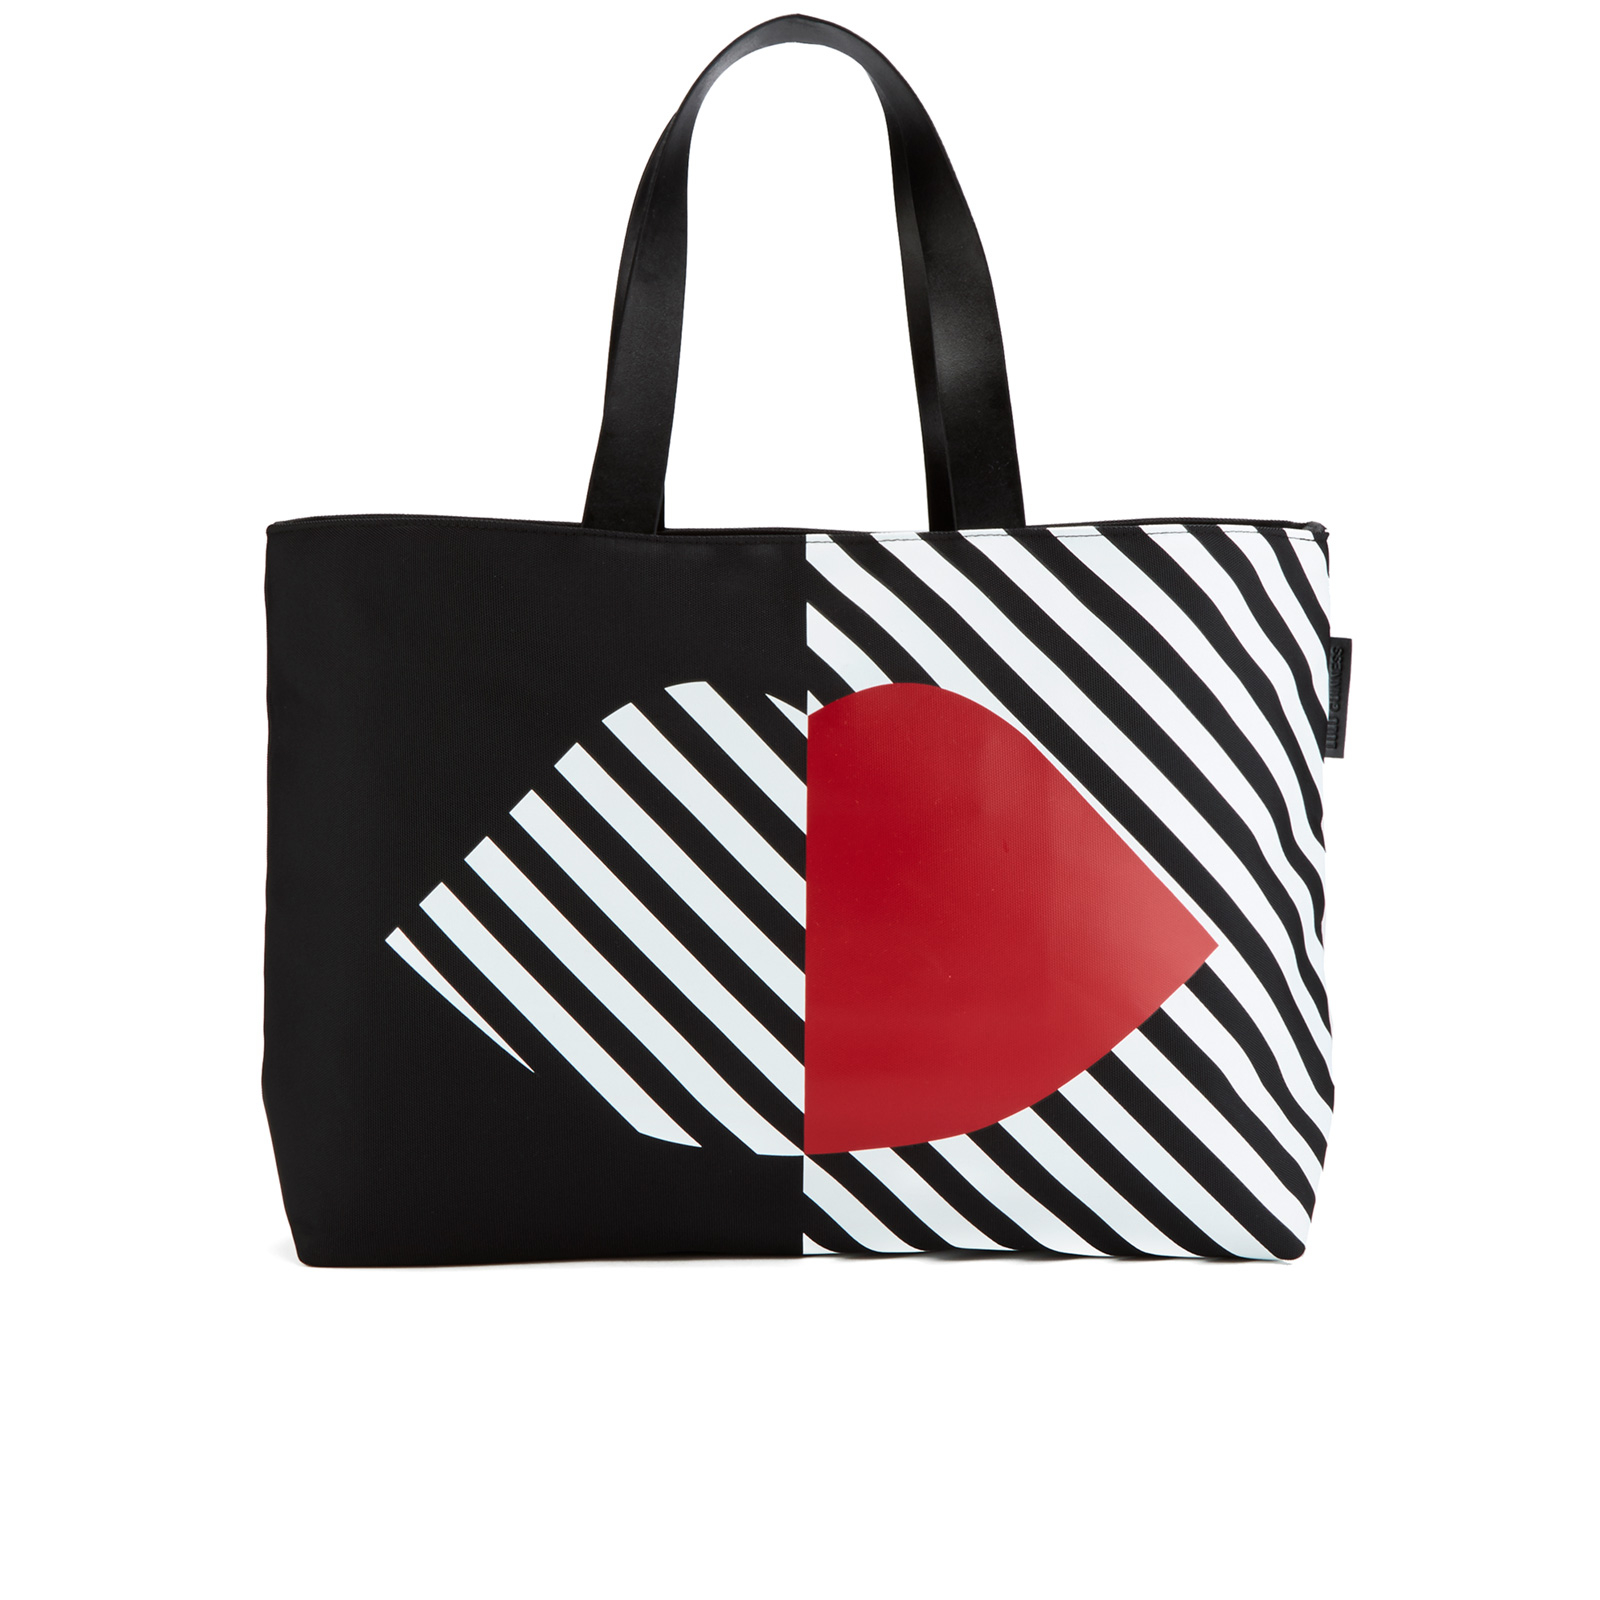 ae36c75dd Lulu Guinness Women's Larysa 50:50 Lips Large Stripe Tote Bag - Black/White/Red  - Free UK Delivery over £50